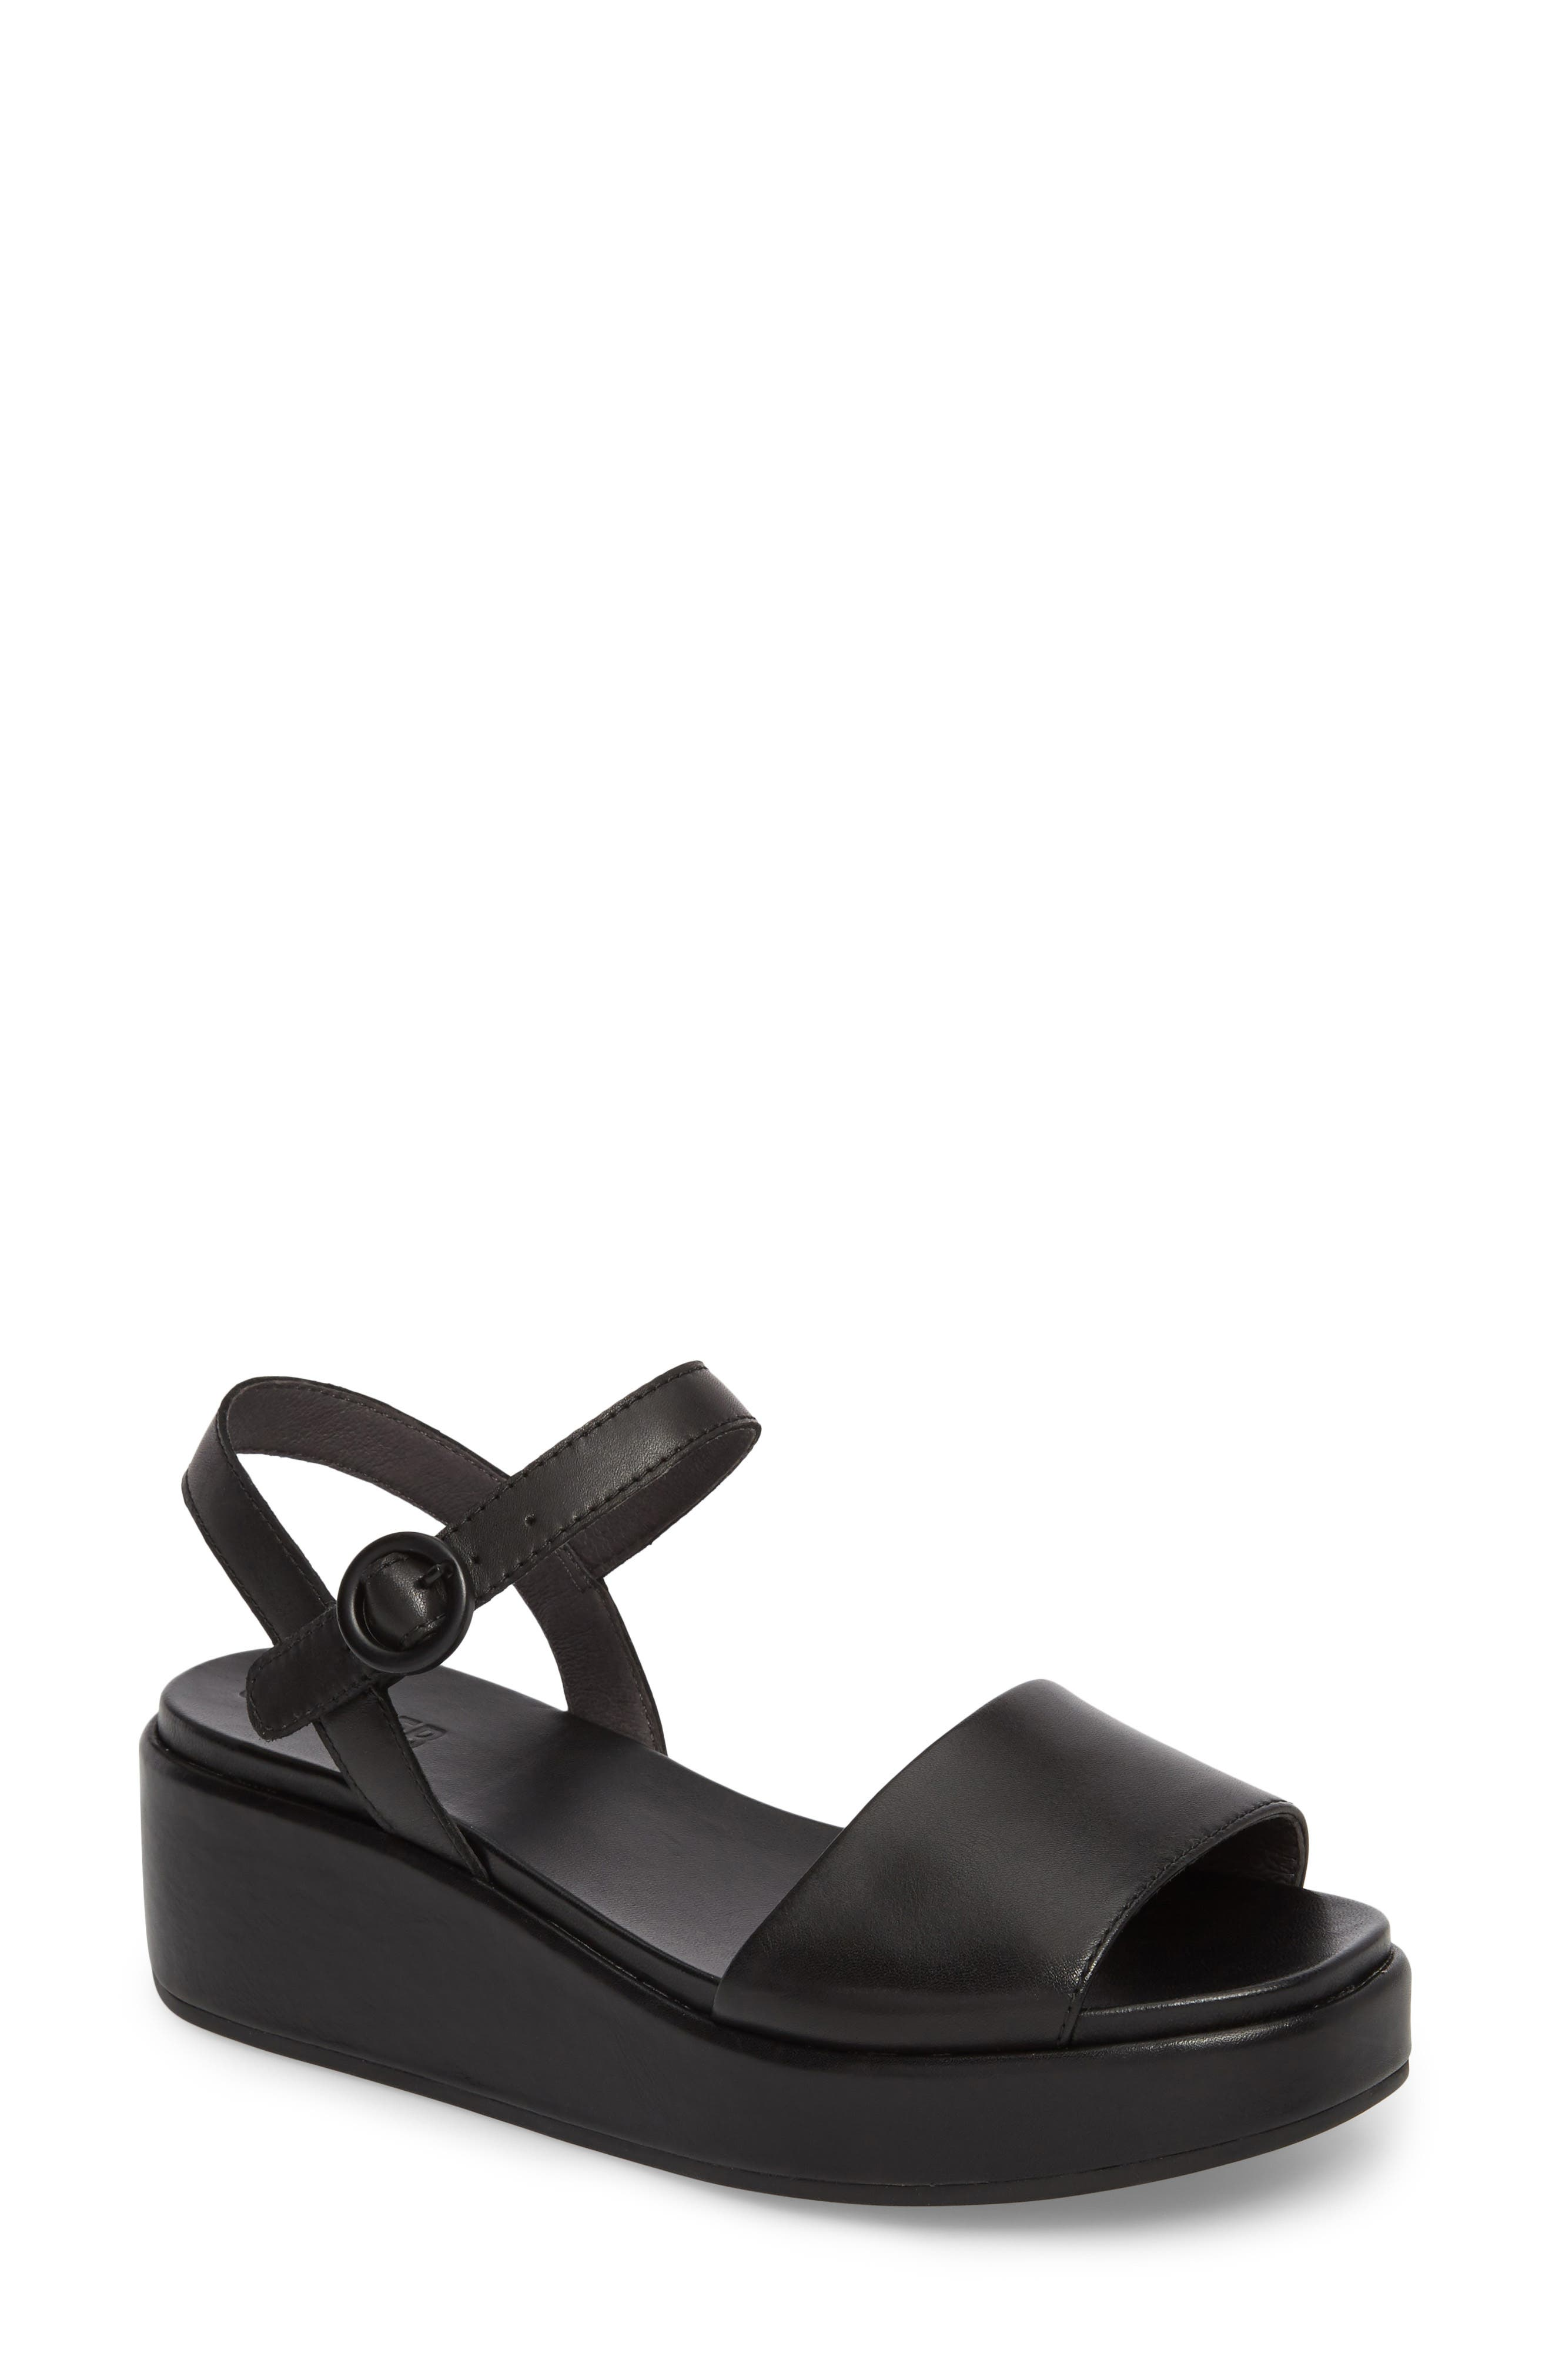 Misia Platform Wedge Sandal,                             Main thumbnail 1, color,                             001